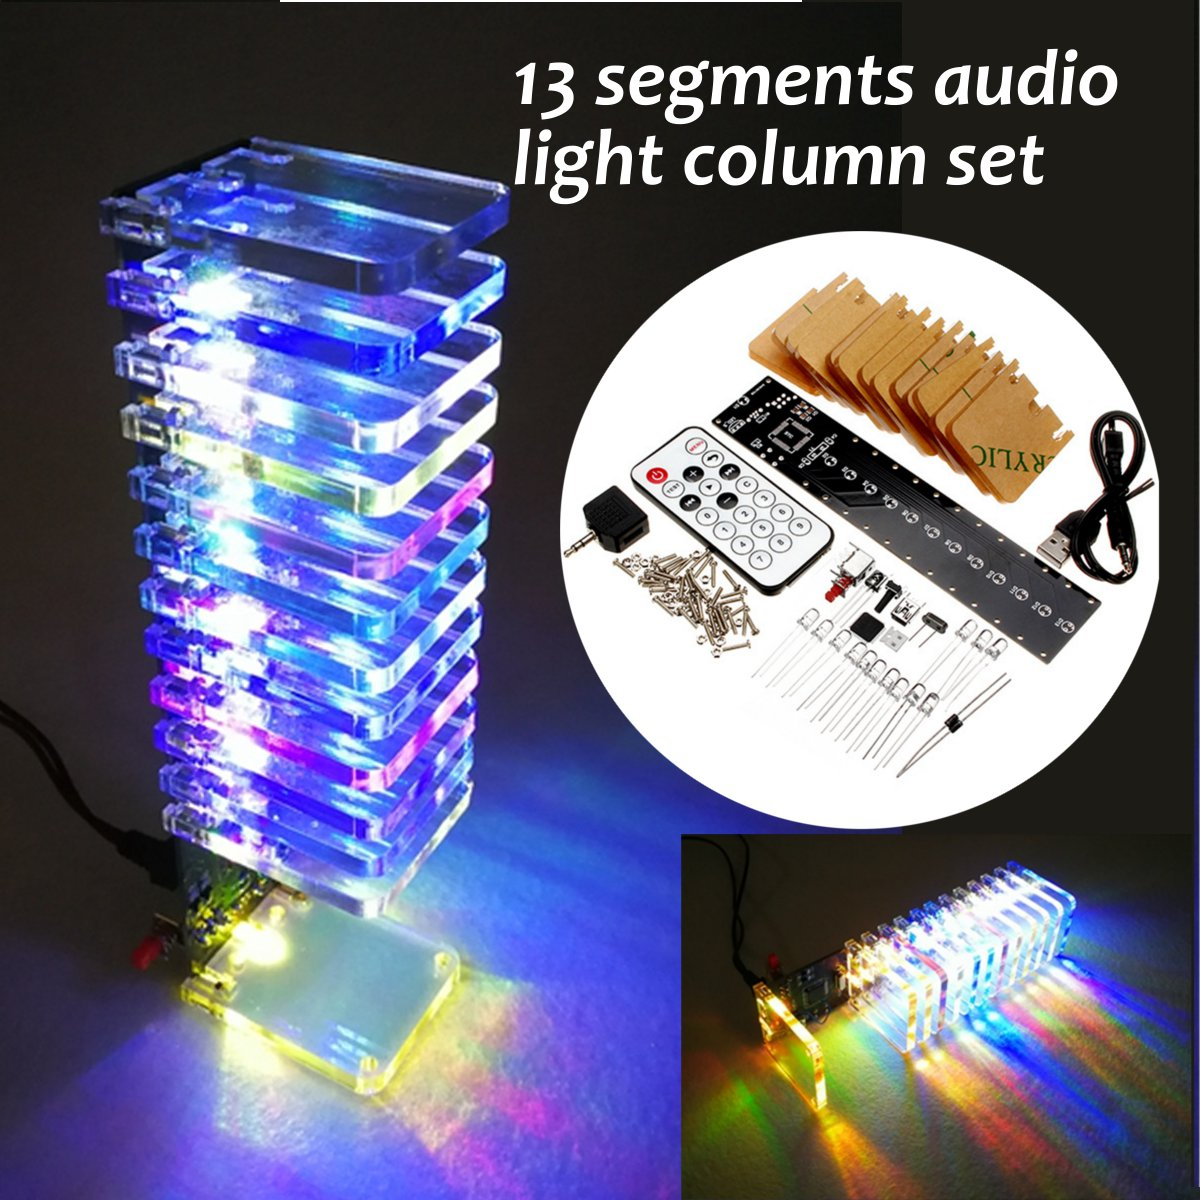 Audio Light Column SCM 13 Segments Light Cube Set Voice Remote Control Indicator DIY Electronic Music Spectrum Kit for SpeakerAudio Light Column SCM 13 Segments Light Cube Set Voice Remote Control Indicator DIY Electronic Music Spectrum Kit for Speaker